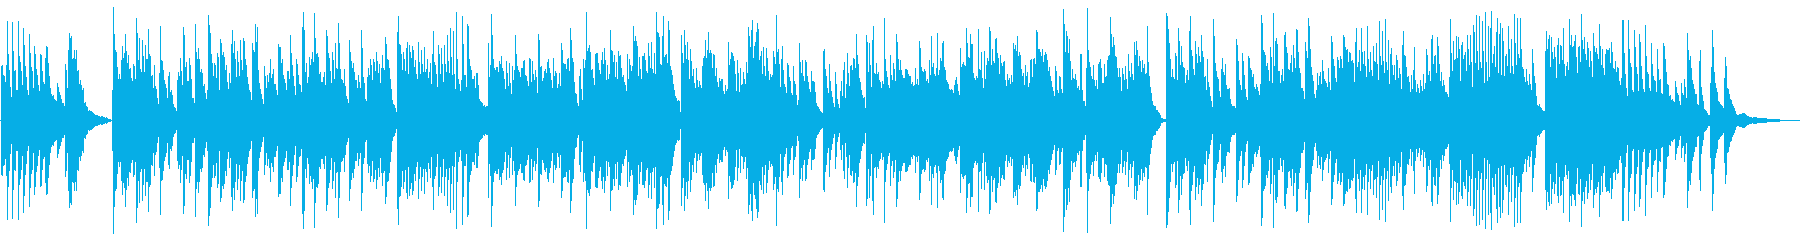 Slow piano I want to hear in the morning's reproduced waveform